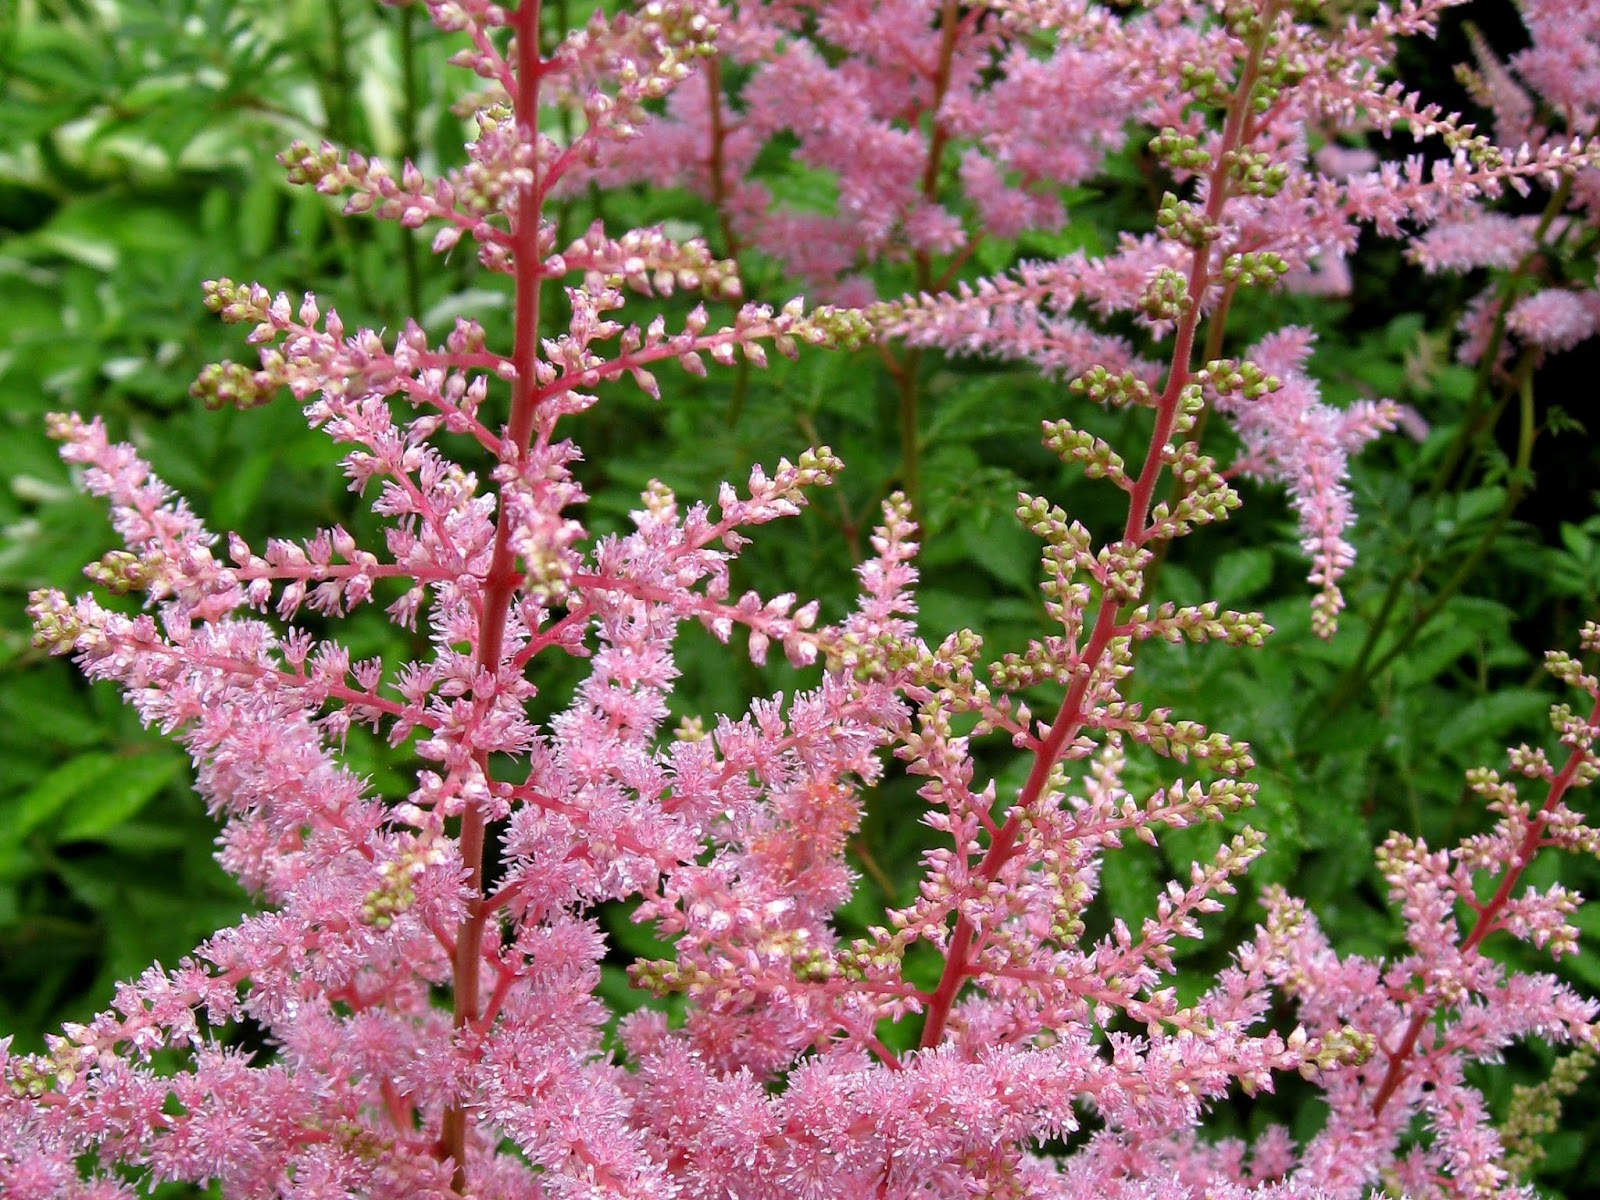 Image Astilbe.jpg free for use with attribution